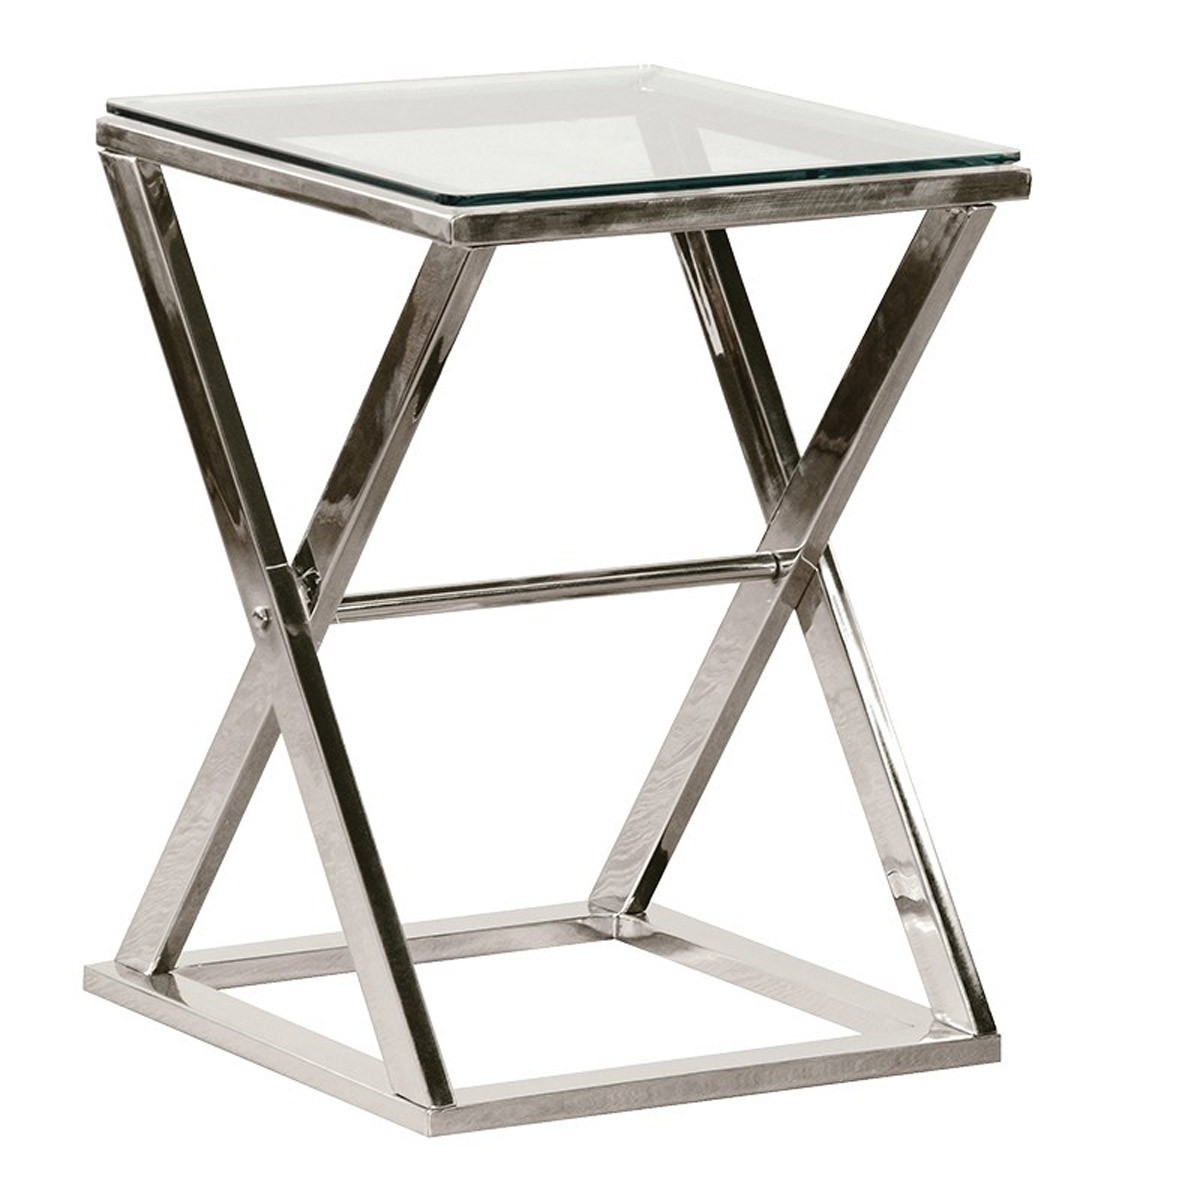 chrome cross legged glass end table side tables living foyer accent small grill spatula canadian tire patio light colored coffee wireless bedside lamp black and white throw rug